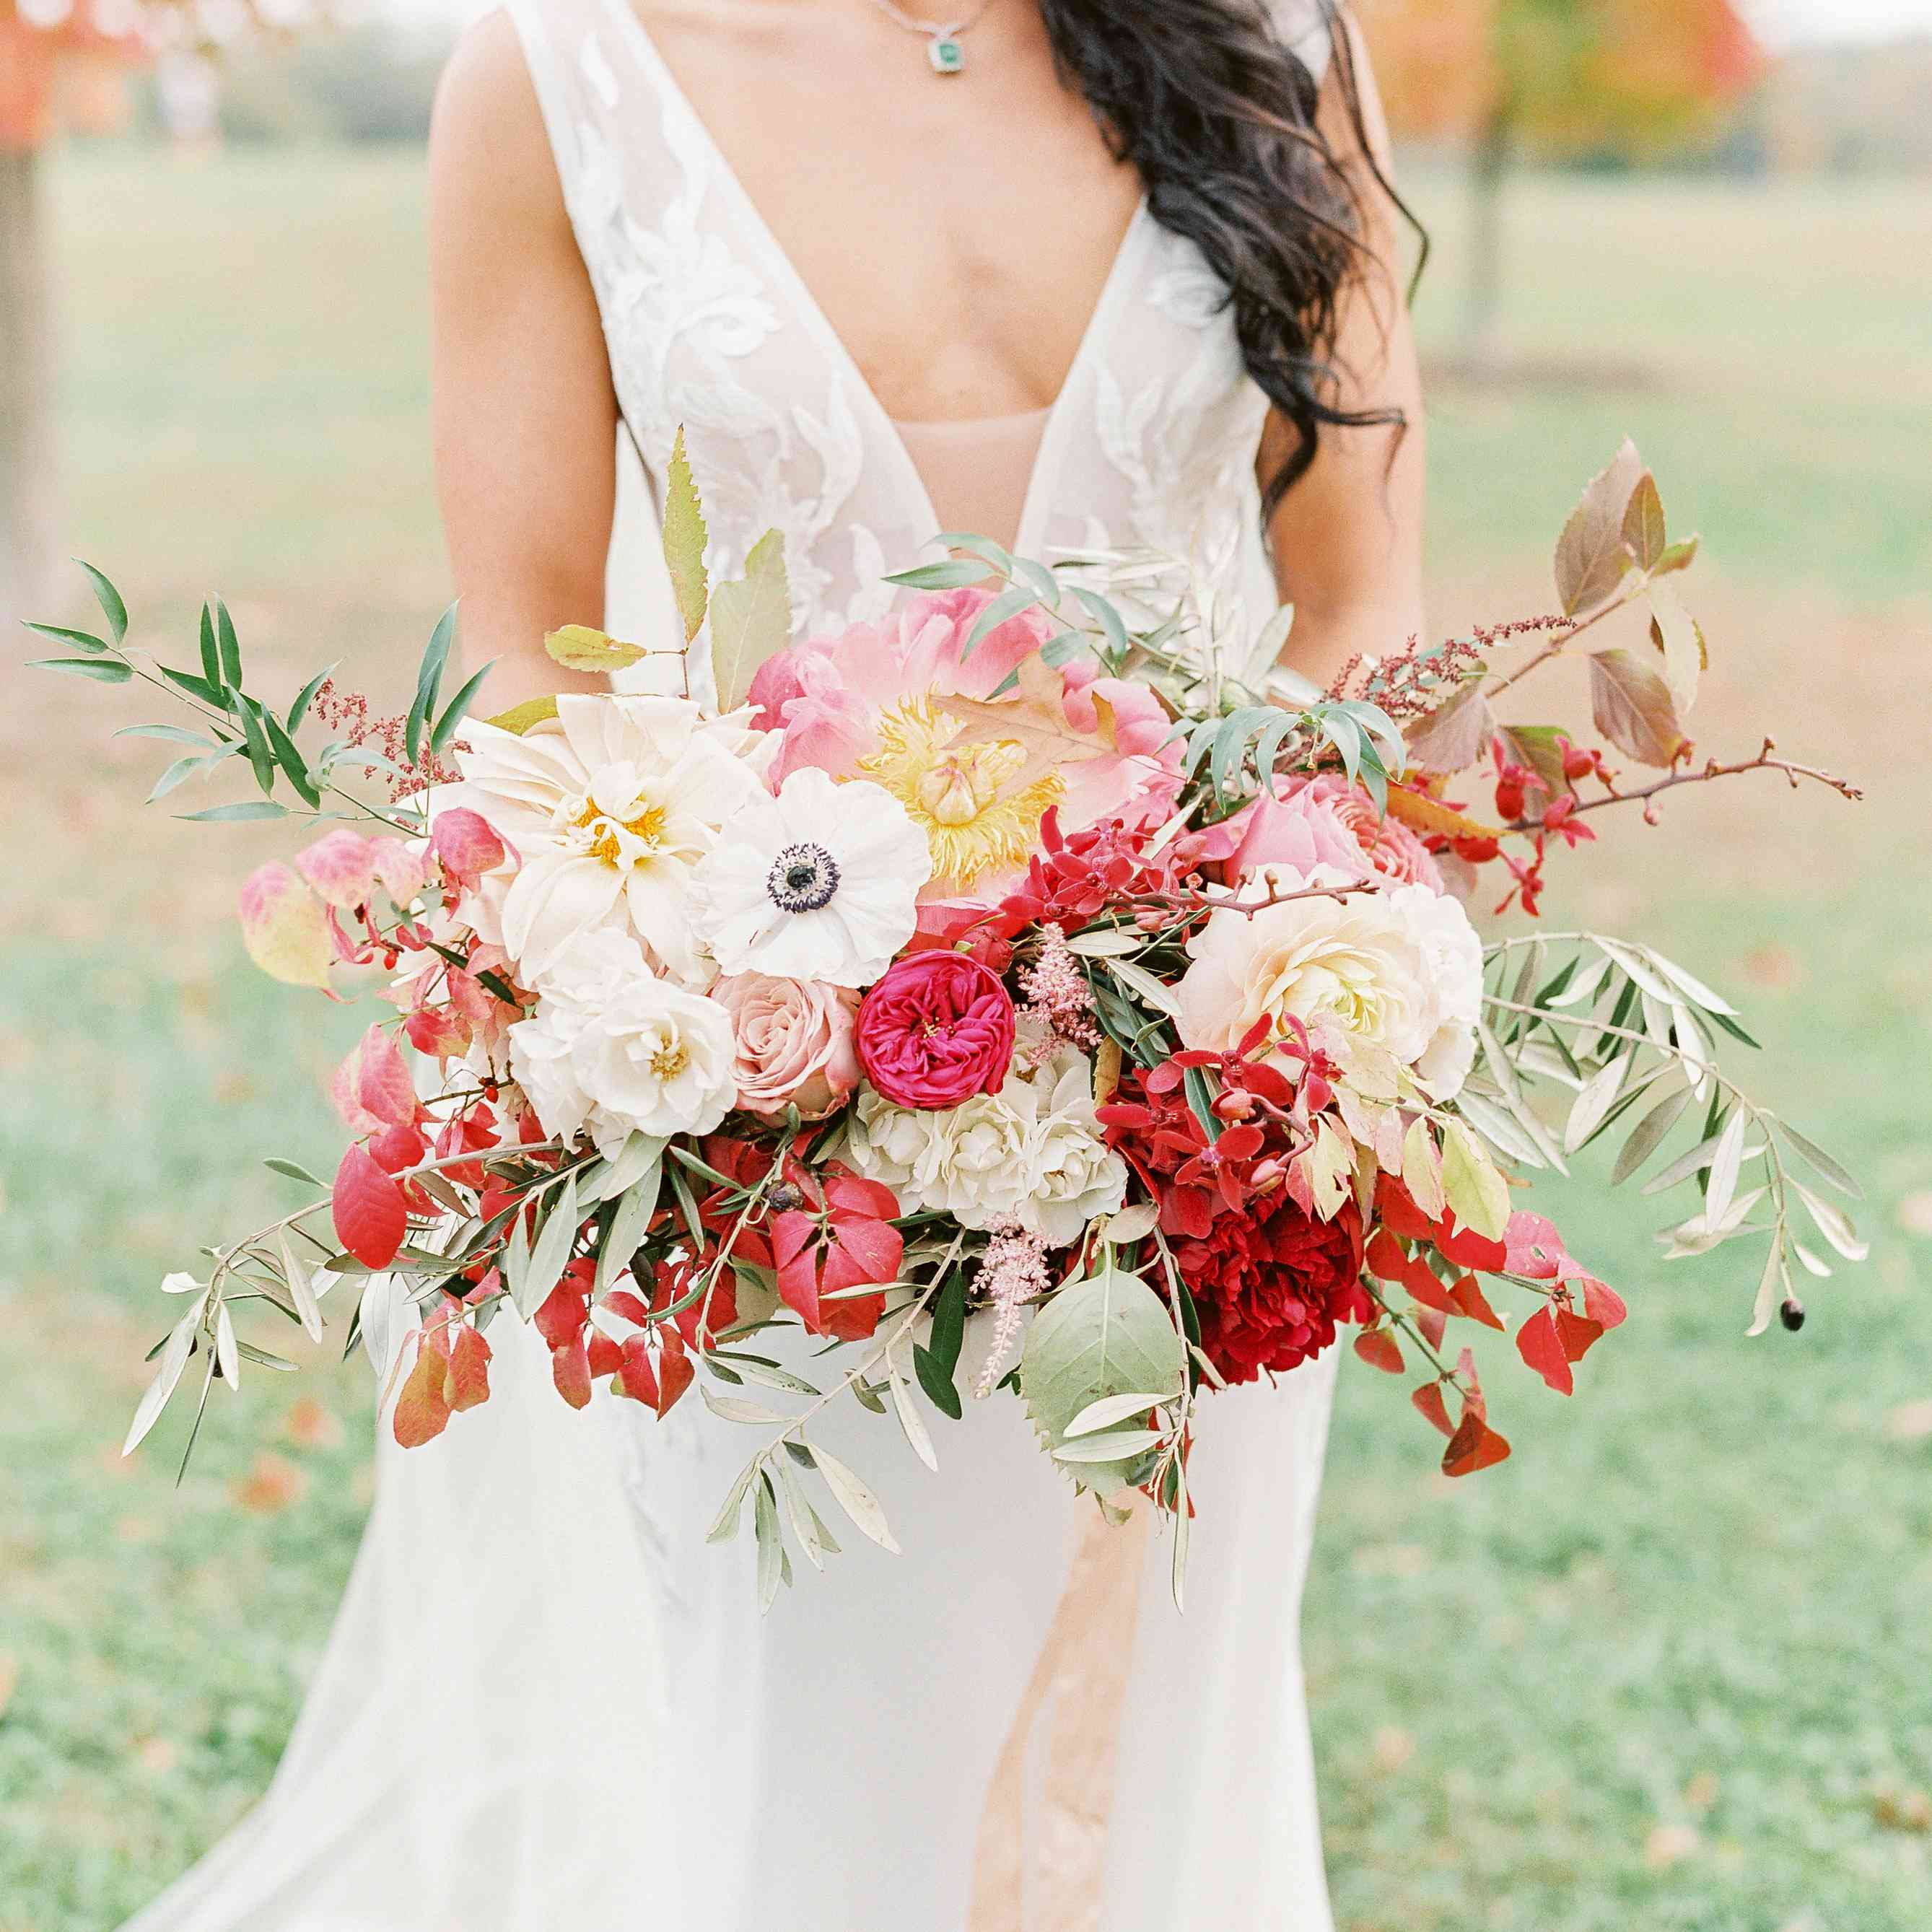 Bridal bouquet featuring red accents